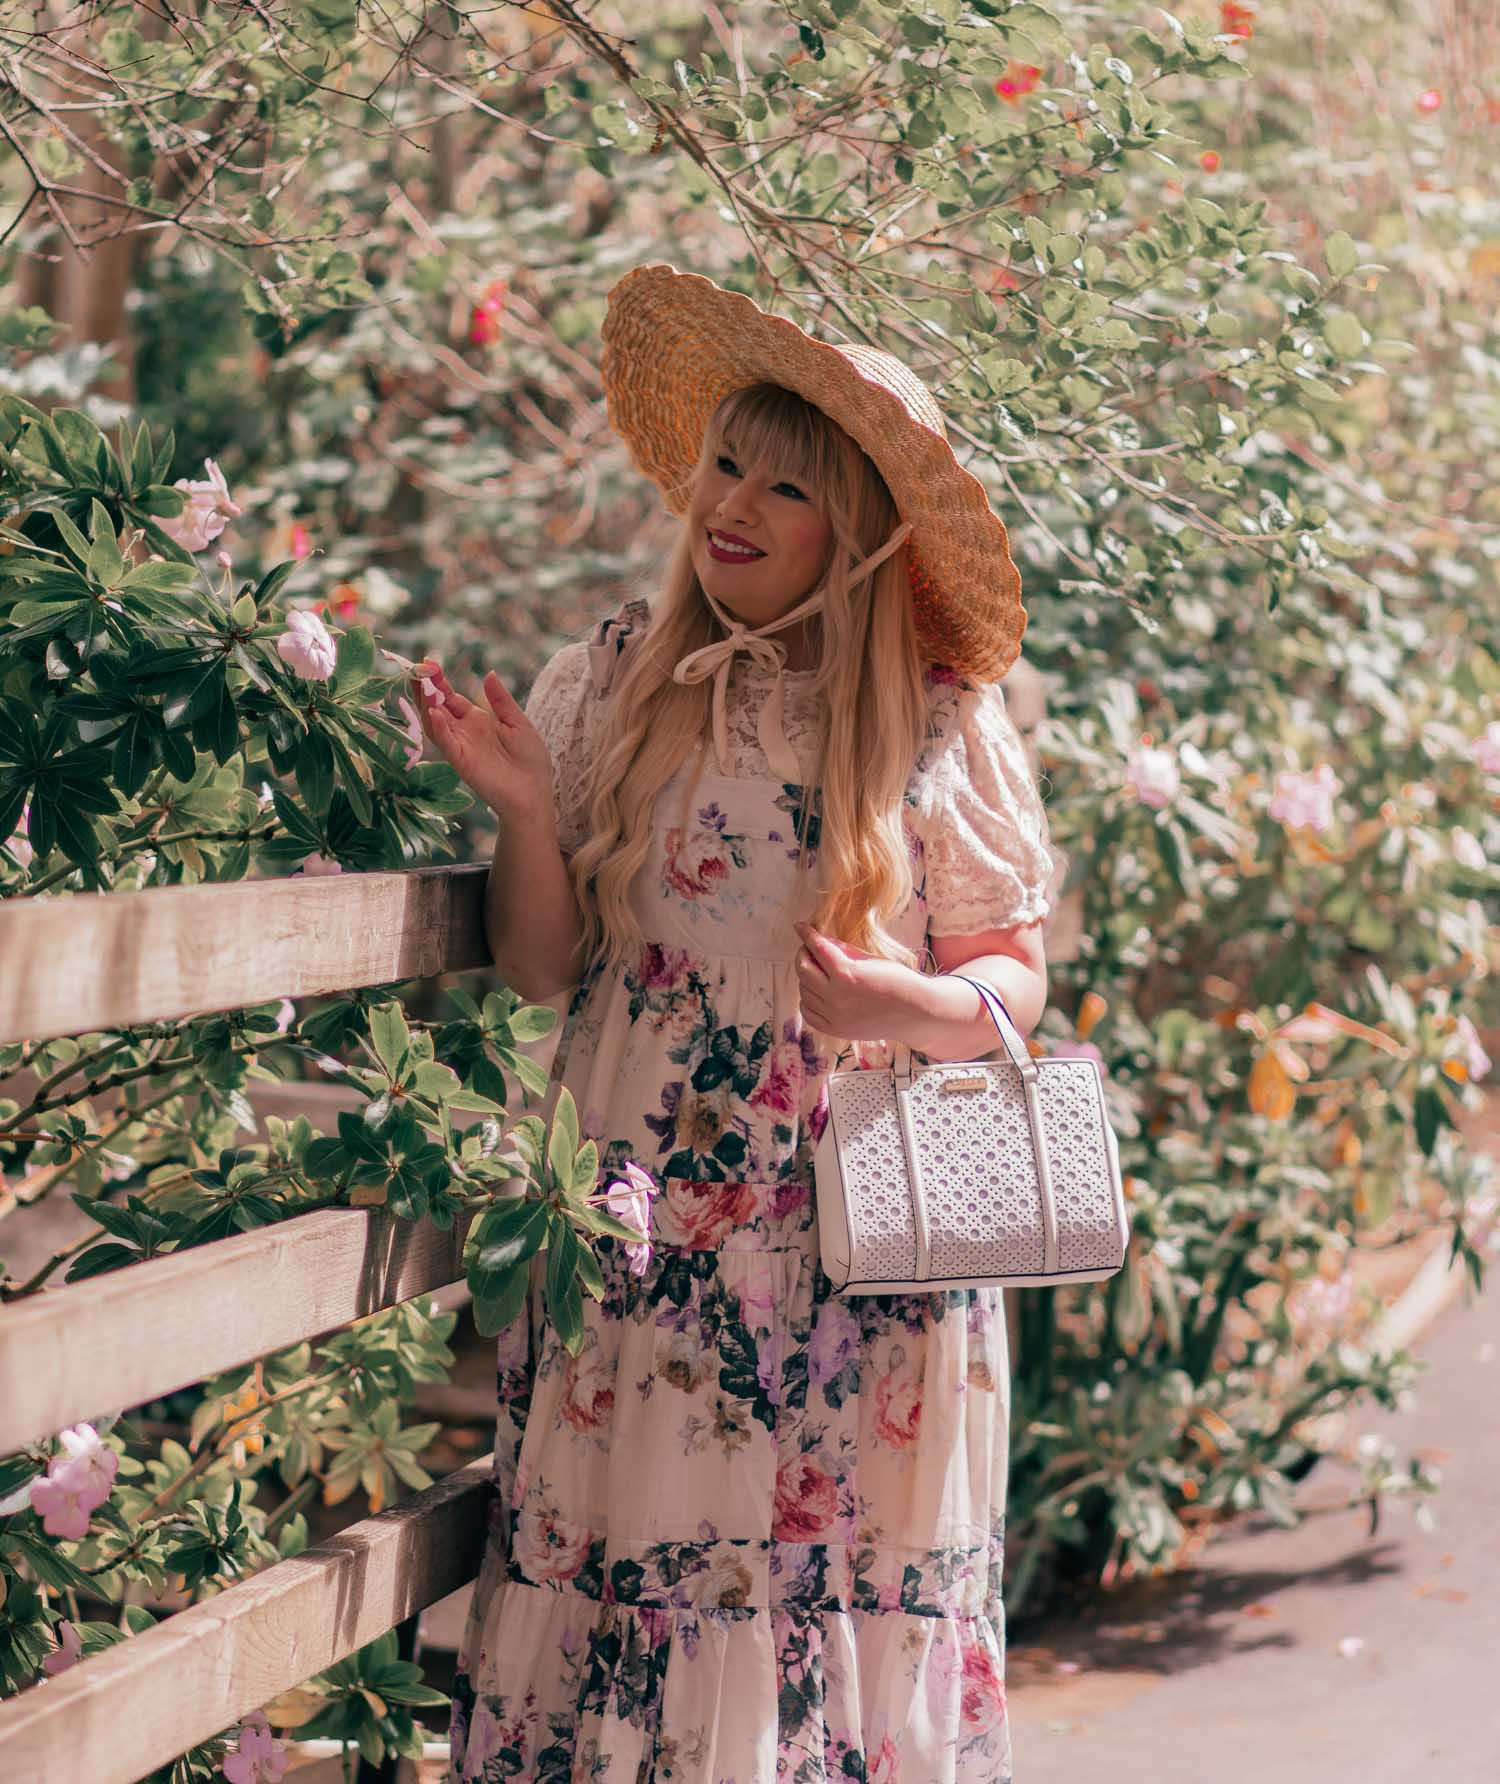 Feminine Fashion Blogger Elizabeth Hugen of Lizzie in Lace shares How to Create a Cottagecore Aesthetic Outfit featuring a floral chicwish dress and white kate spade bag